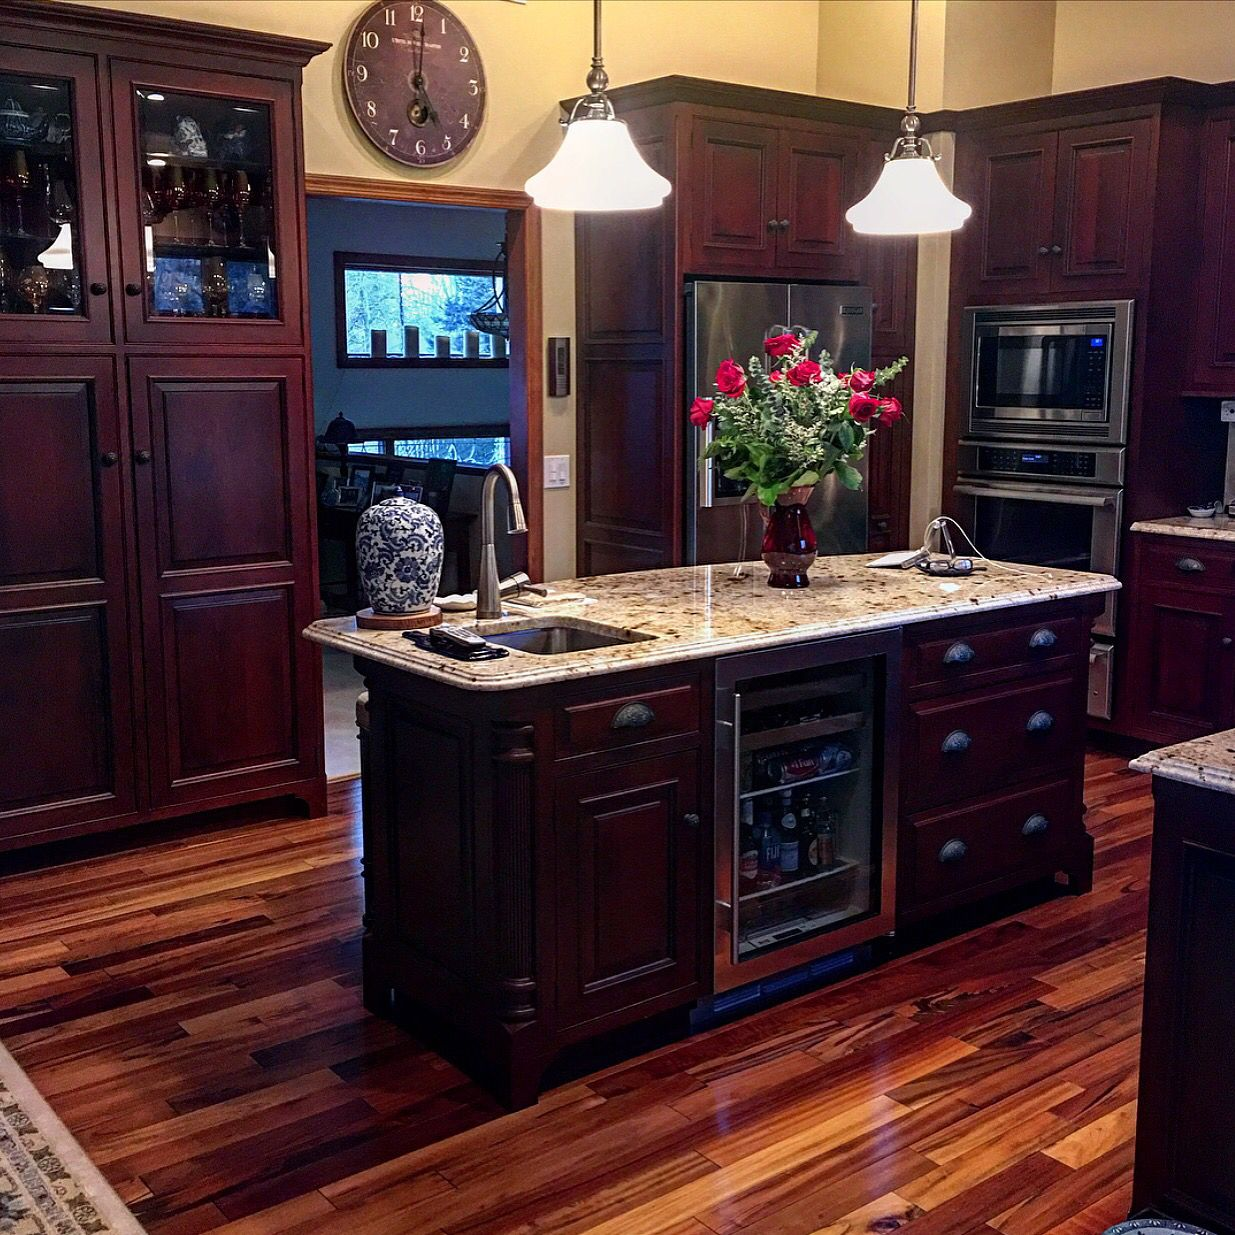 Dark Cabinets With Light Countertops Kitchen Island Tiger Wood Floors Beautiful Kitchen Kit Stained Kitchen Cabinets Tigerwood Flooring Light Wood Kitchens